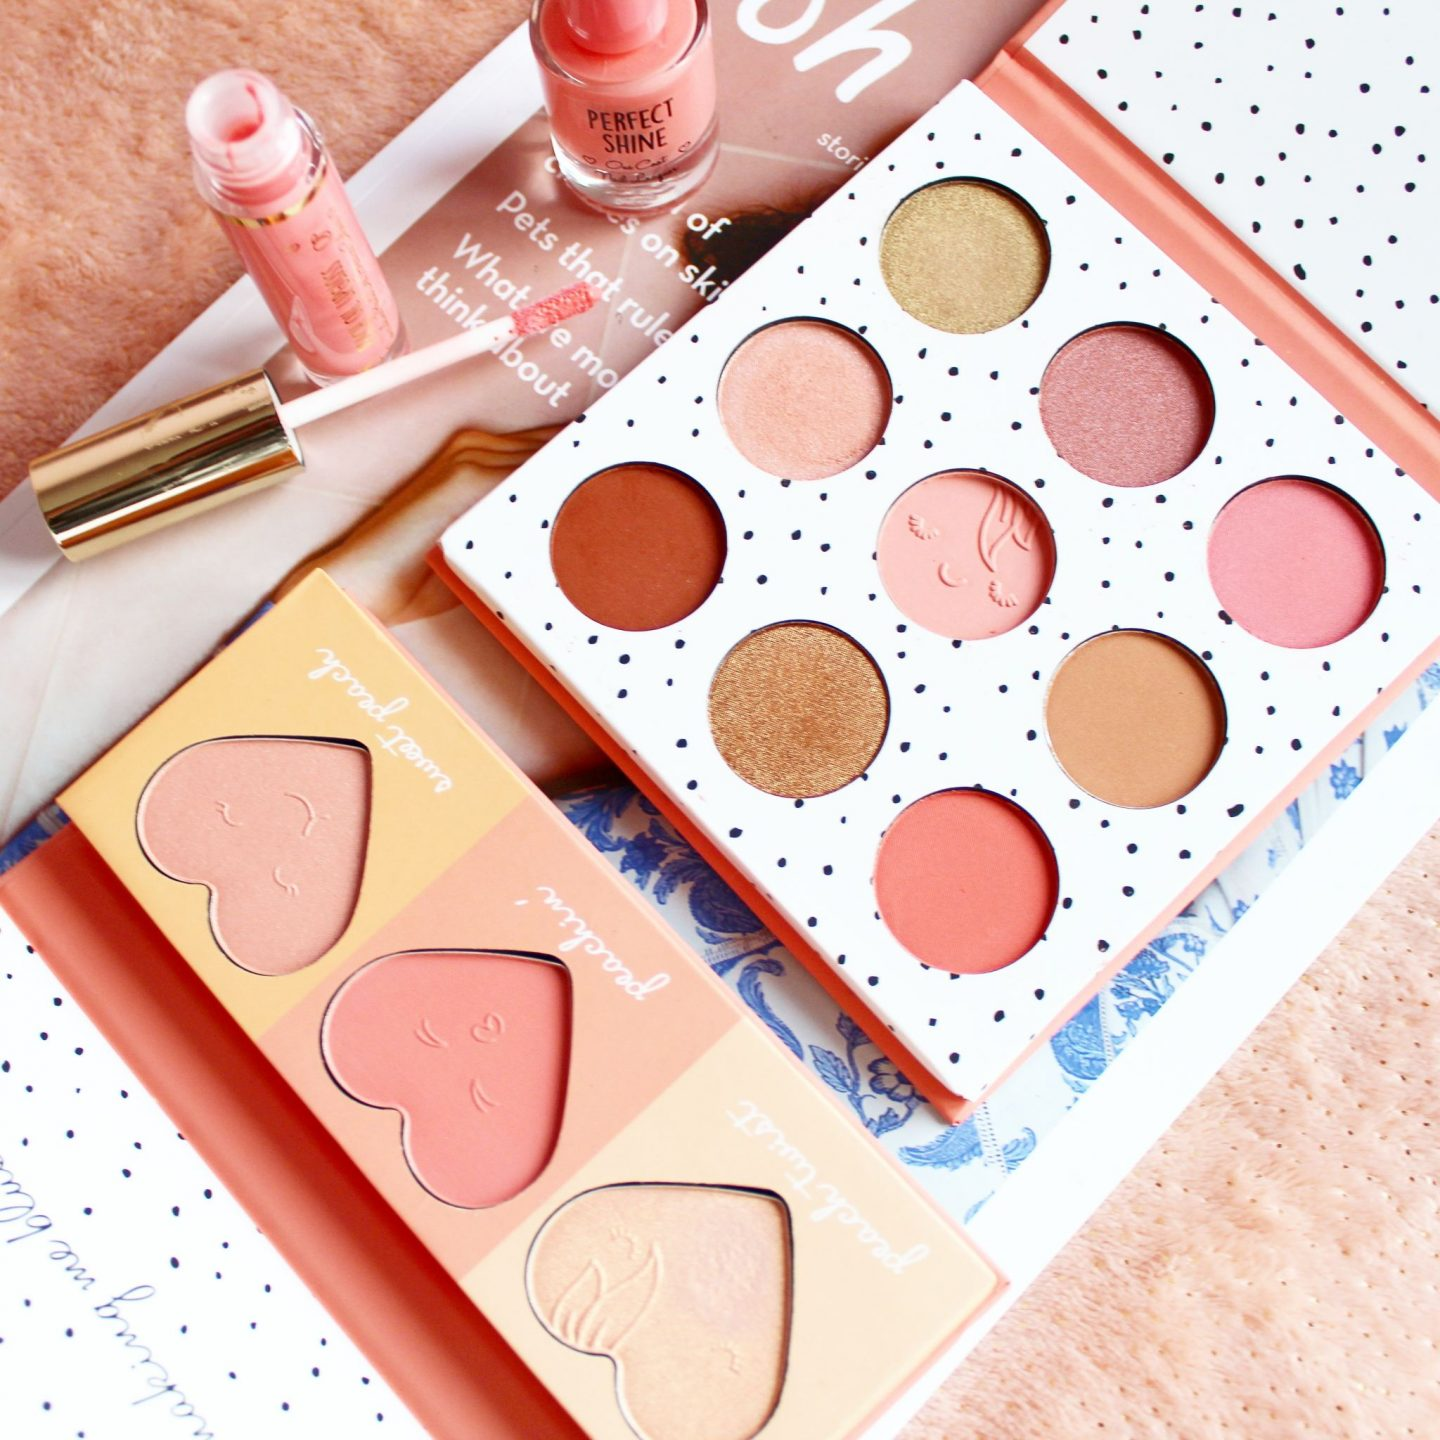 Primark 'Just Peachy' Collection | Review & Swatches